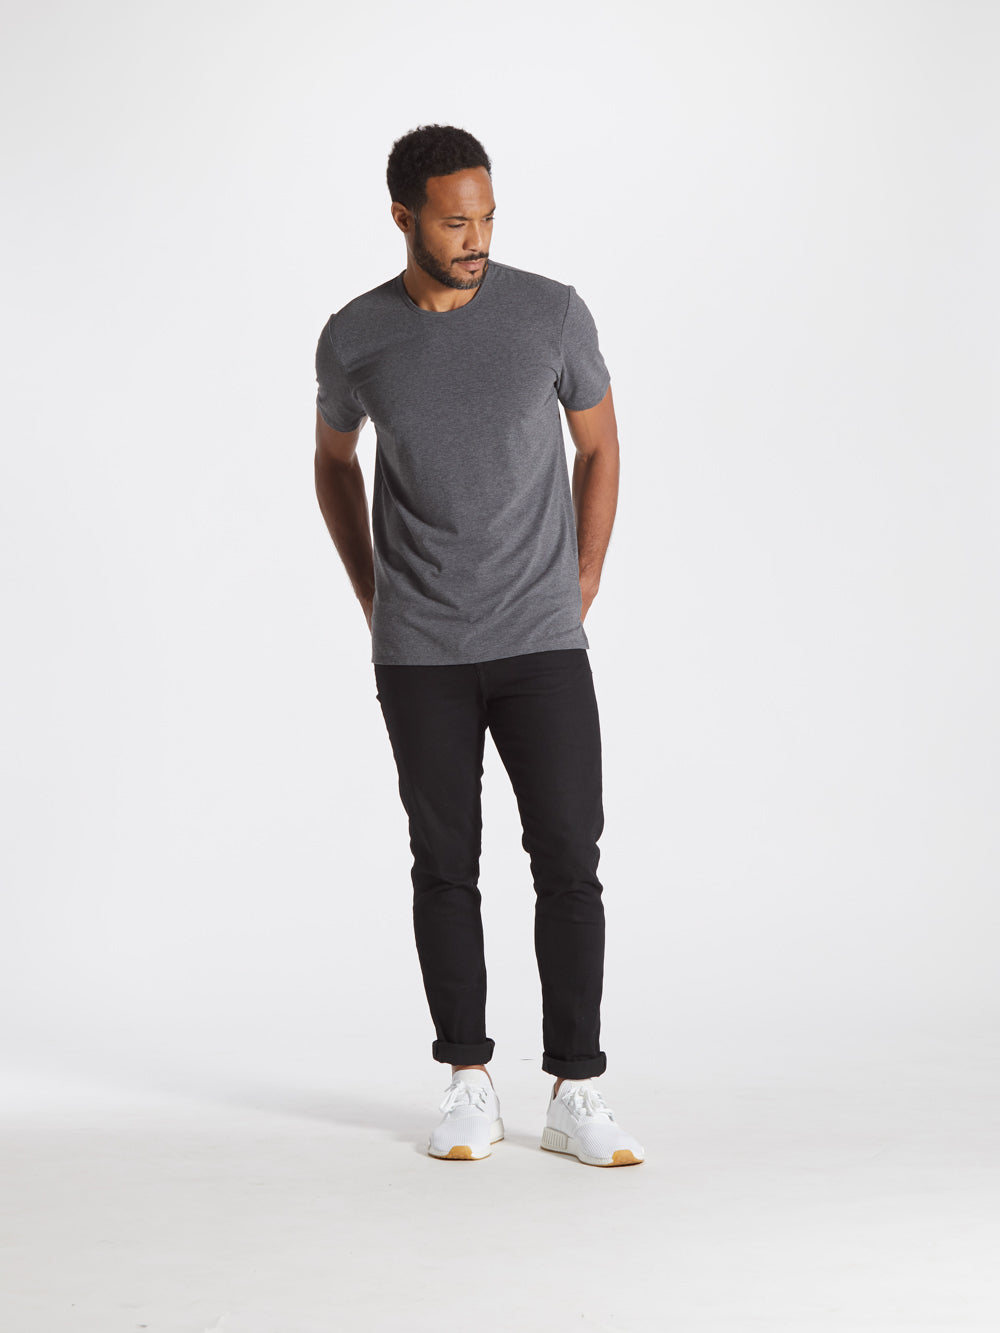 [info]--Mykee is 6'0 and wears a size L